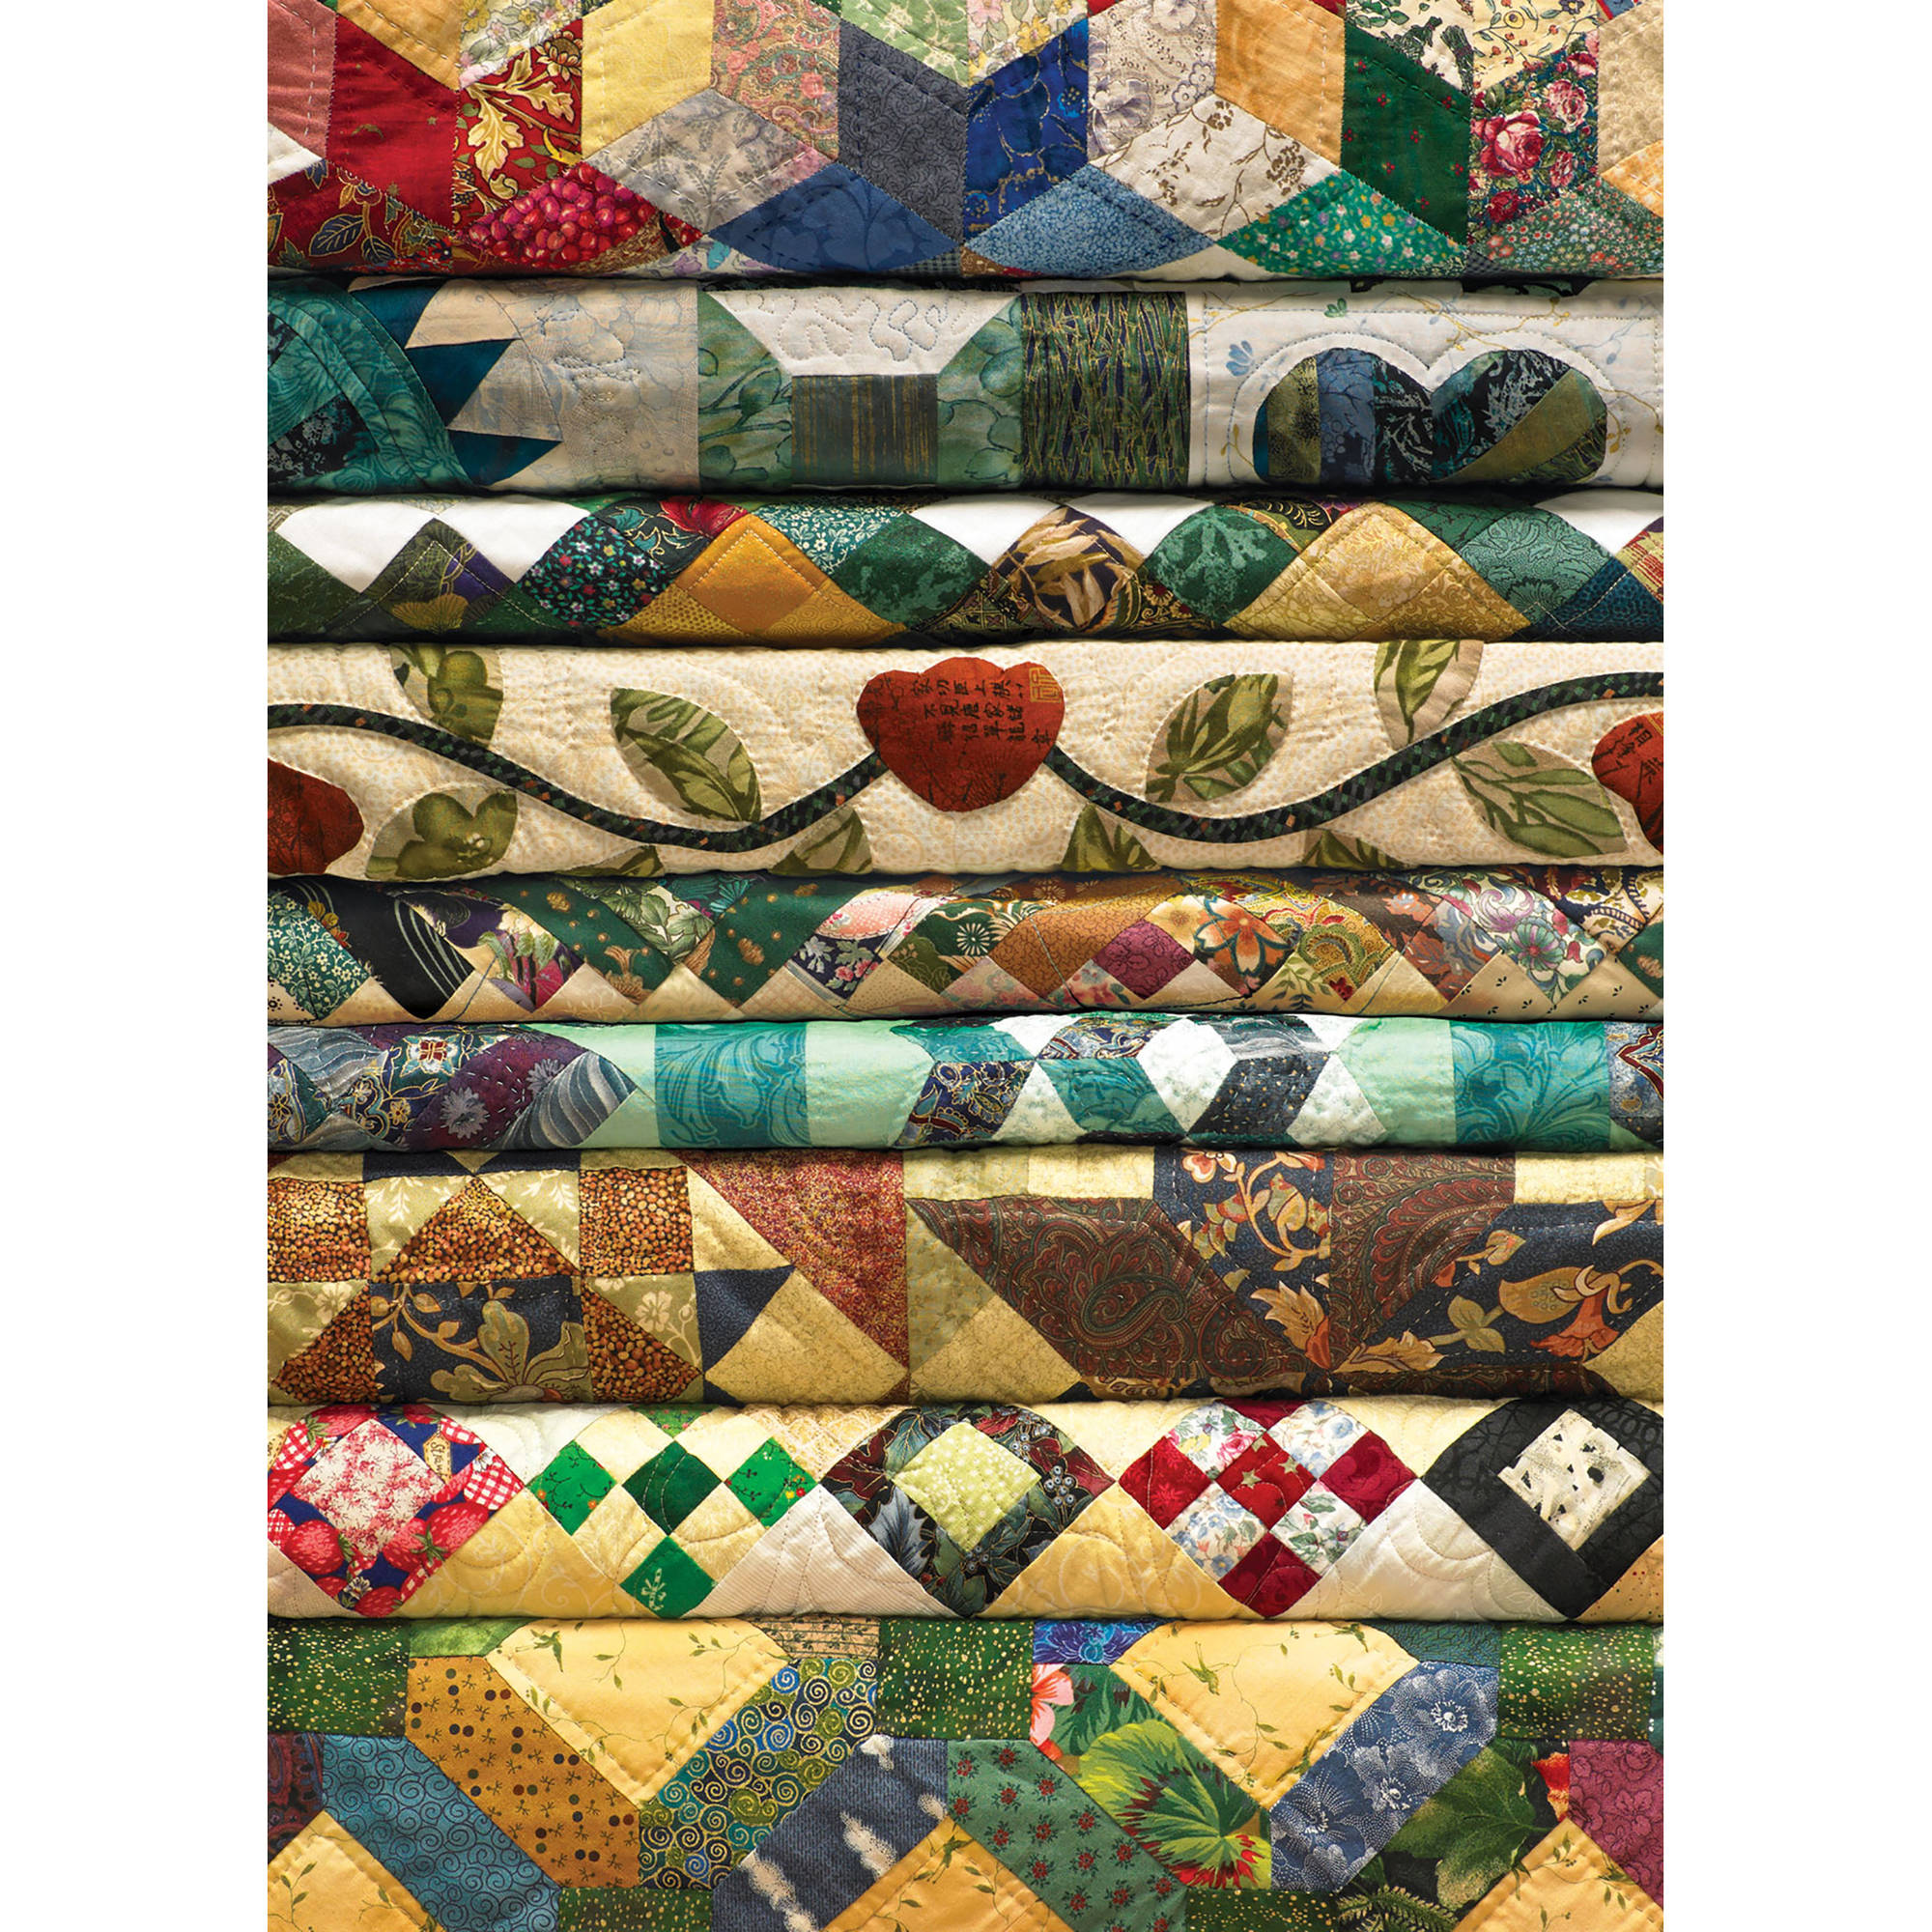 Cobble Hill: Grandmas Quilts 1000 Piece Jigsaw Puzzle by Outset Media